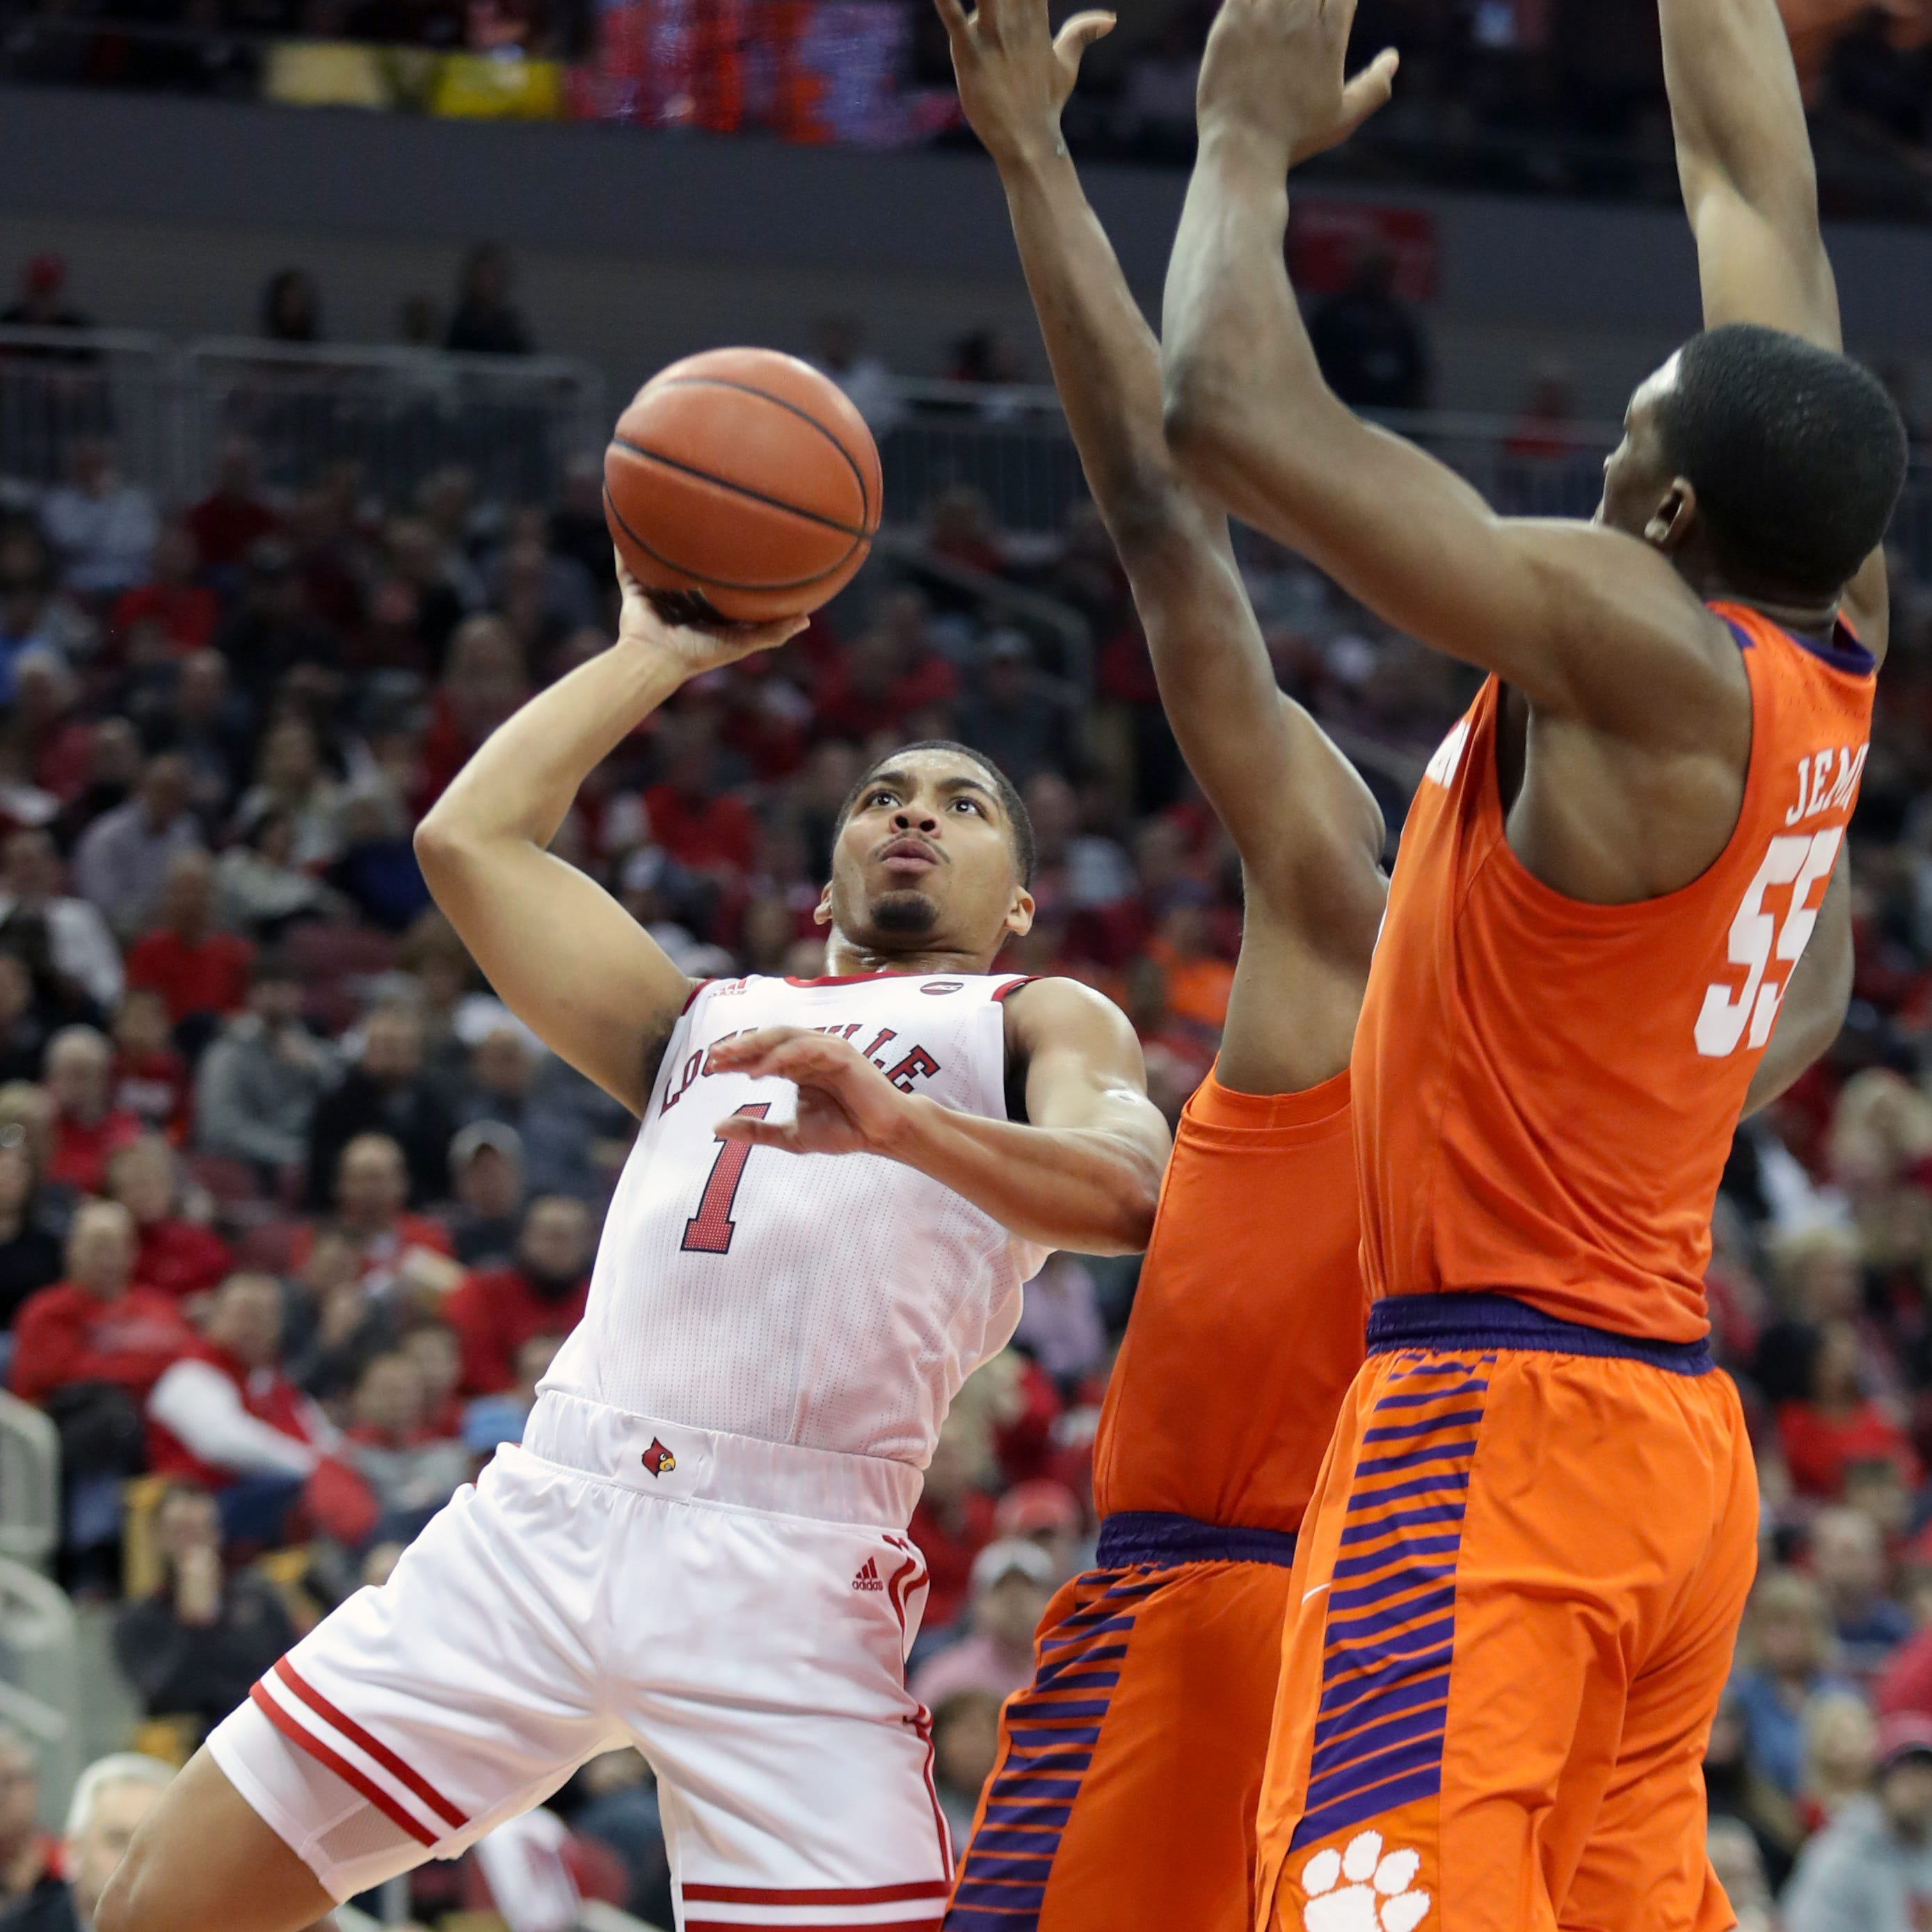 Louisville escapes Clemson at the buzzer in an ugly offensive game